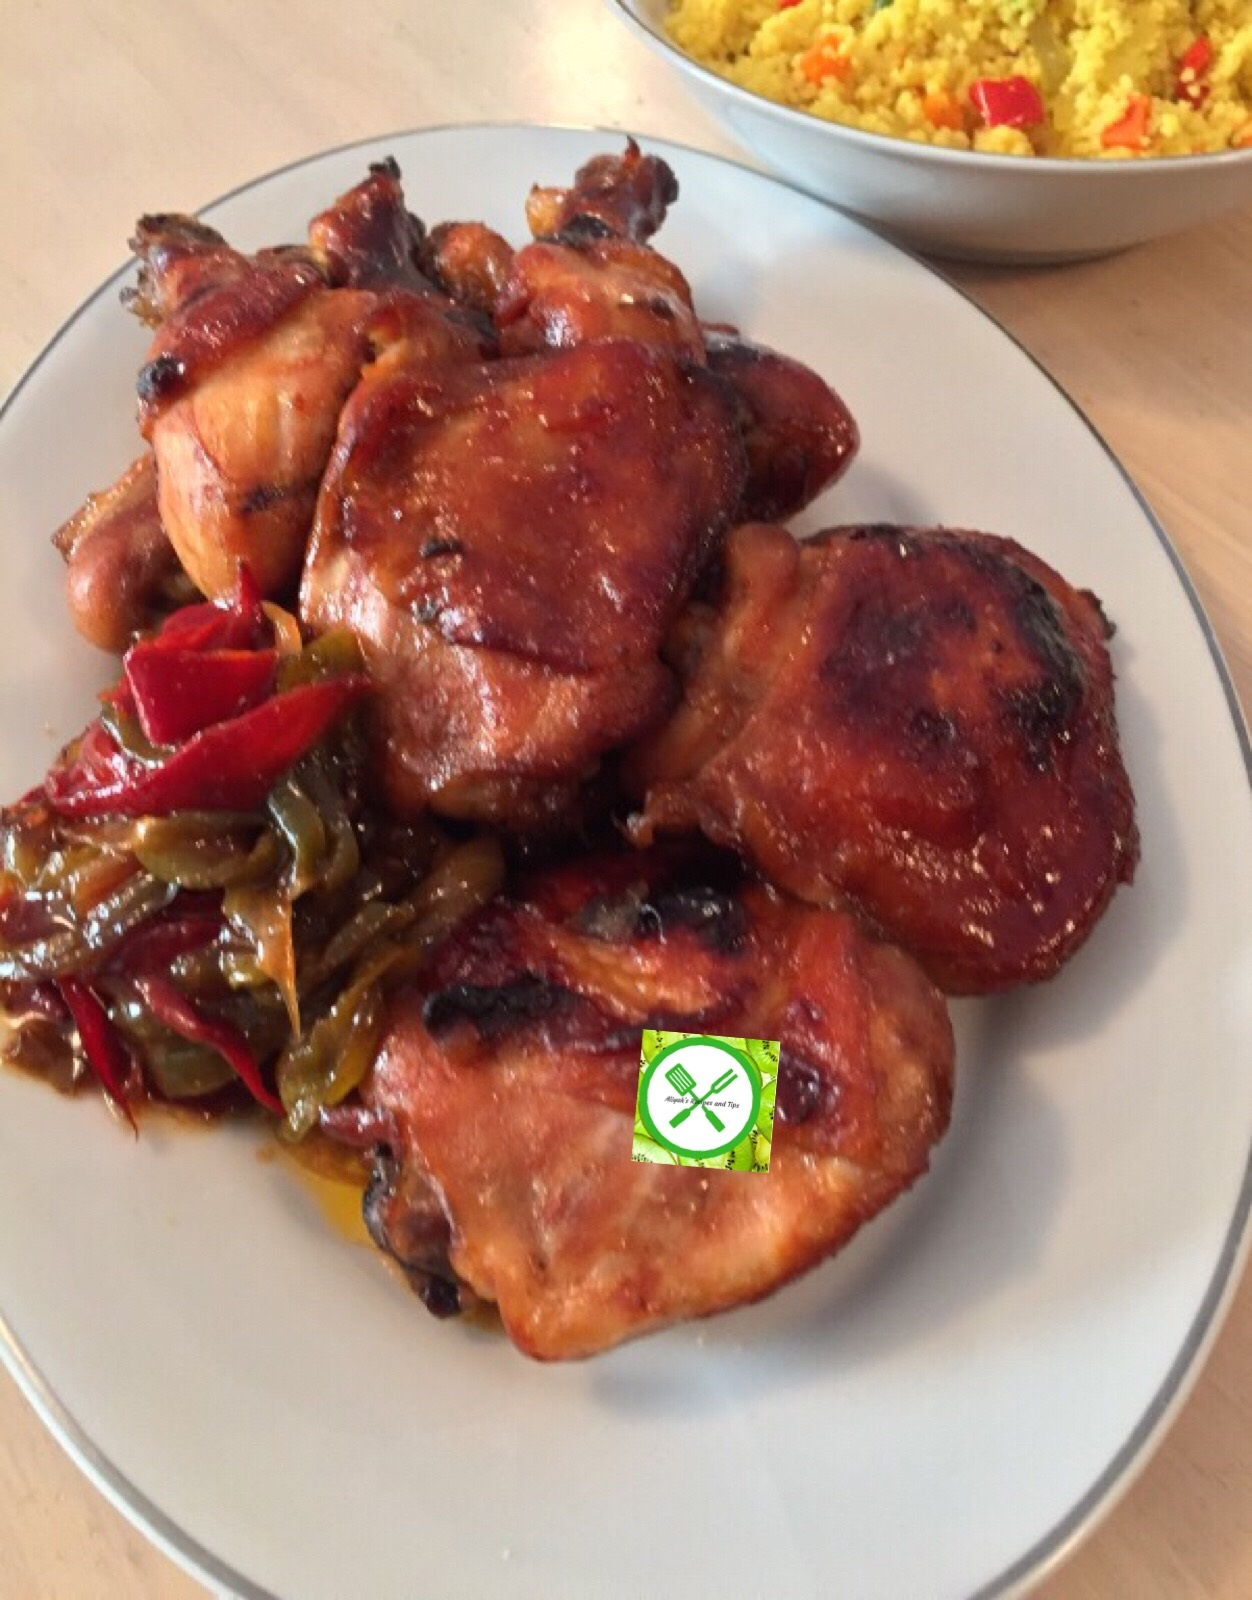 Baked swt n sour chicken